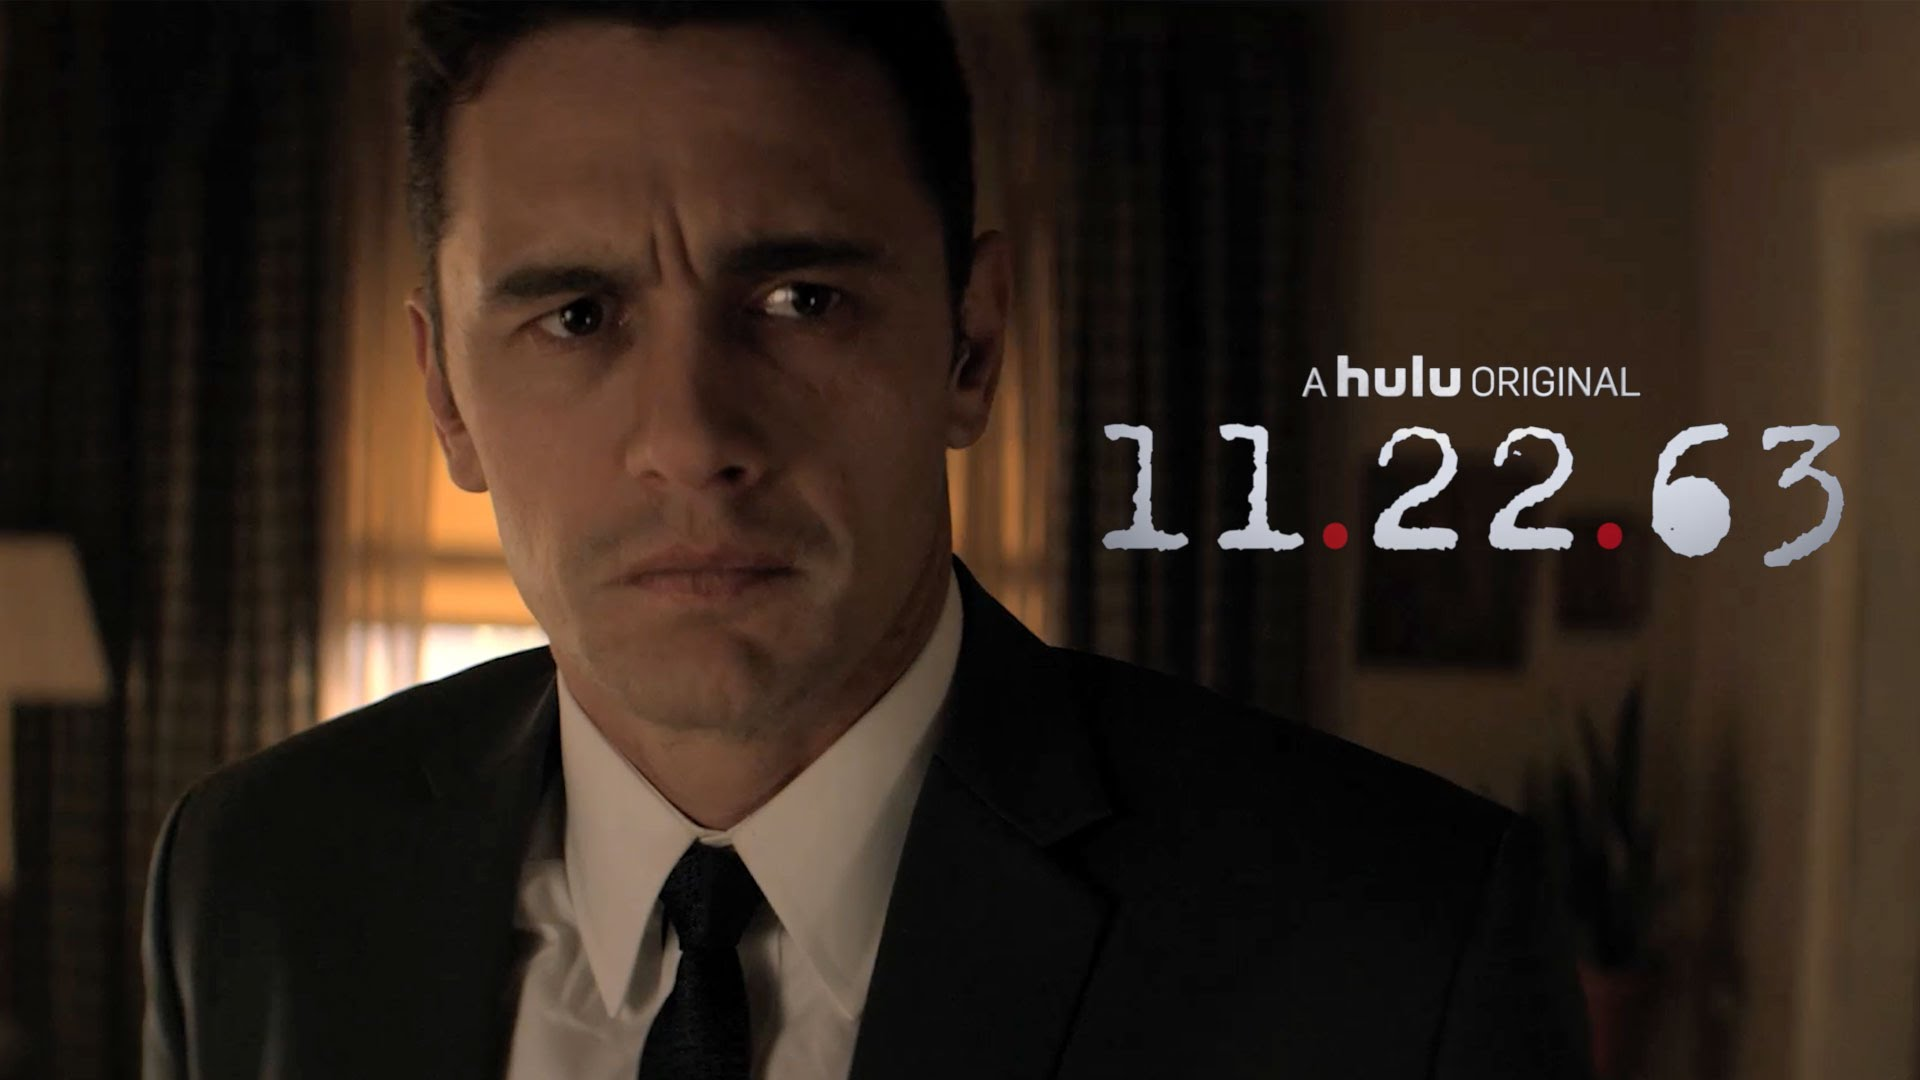 Amazing 11.22.63 Pictures & Backgrounds